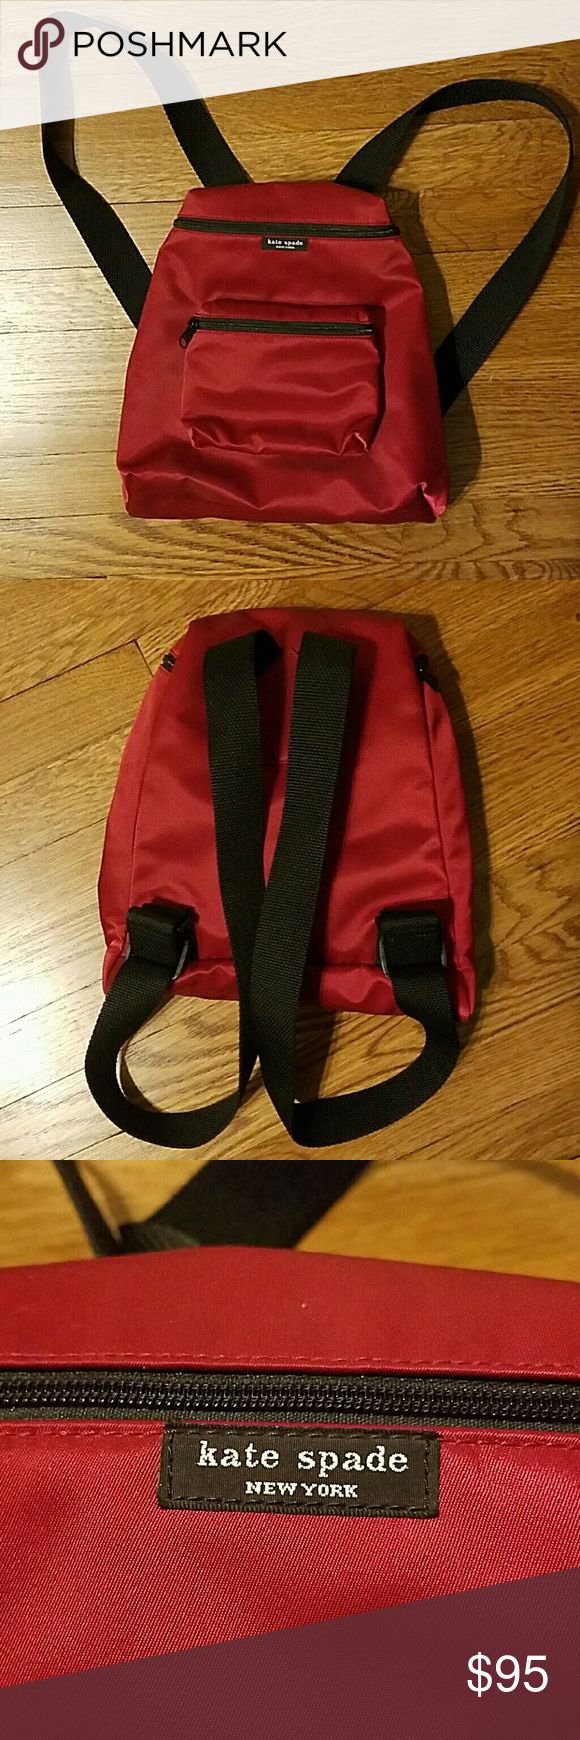 Kate Spade nylon backpack (vintage) Red nylon backpack with black interior and adjustable straps. From the early 2000s. Brand new condition. Used once or twice. kate spade Bags Backpacks